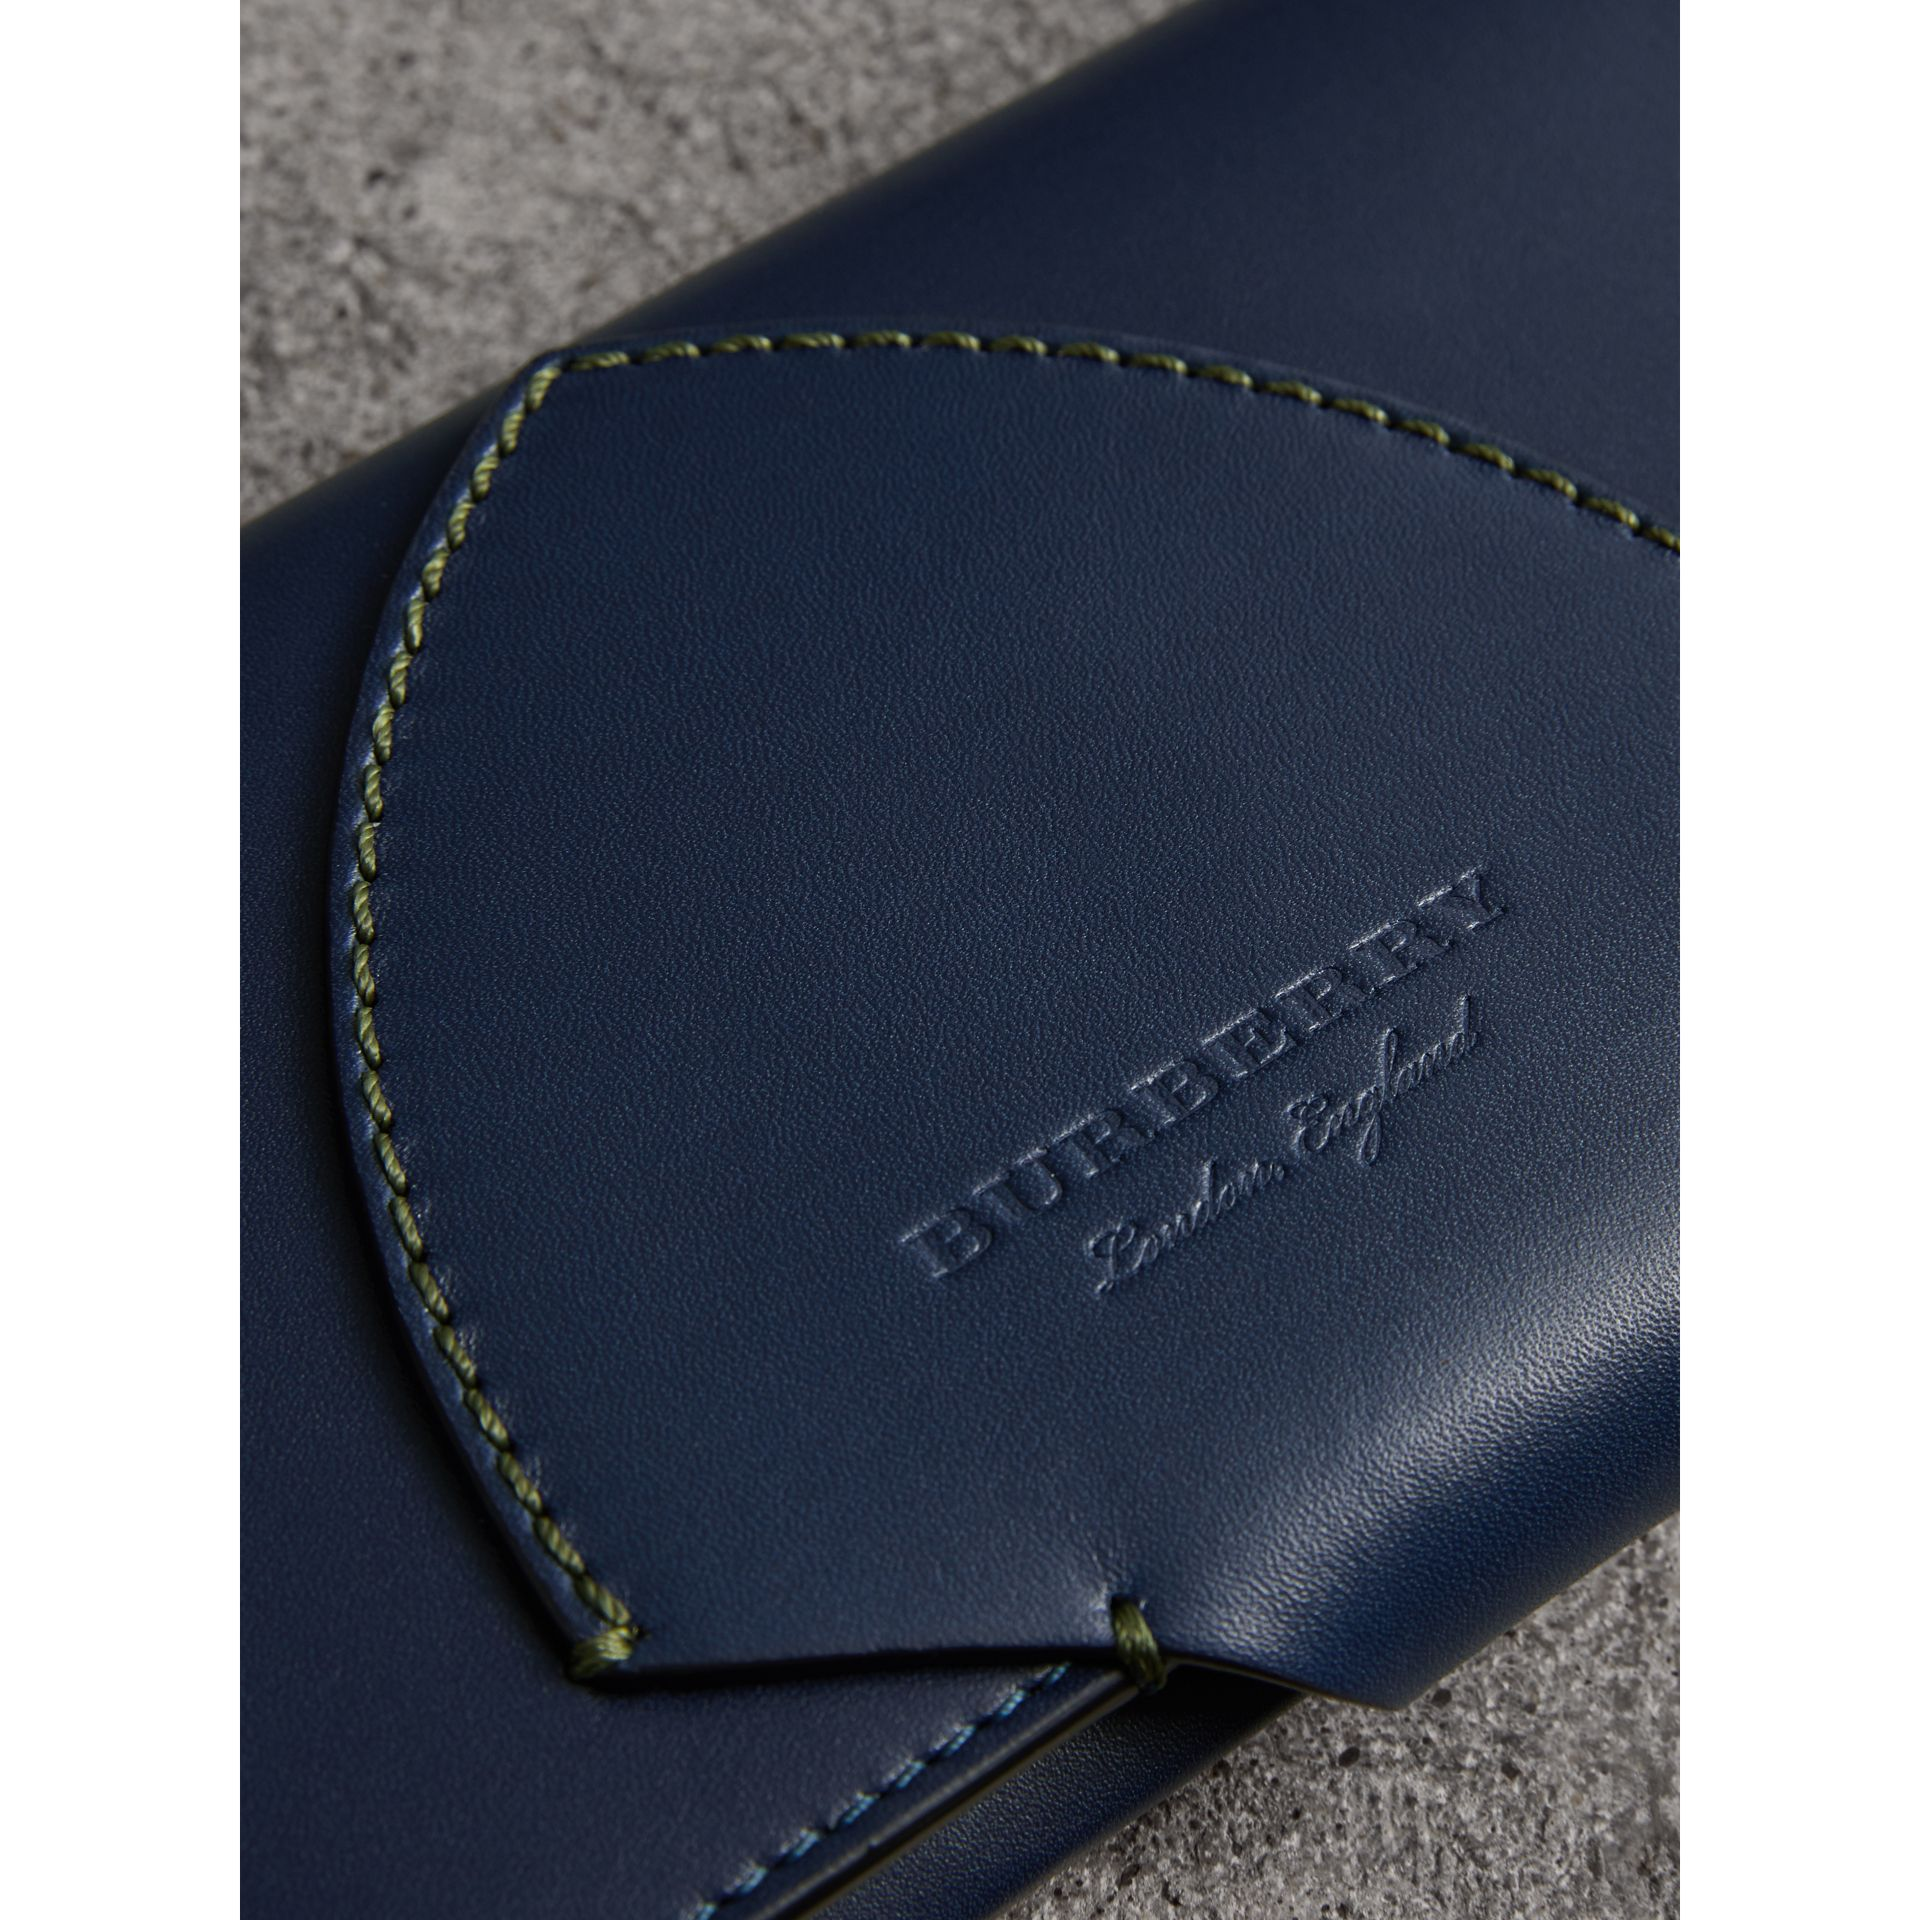 Equestrian Shield Two-tone Leather Continental Wallet in Mid Indigo - Women | Burberry - gallery image 1